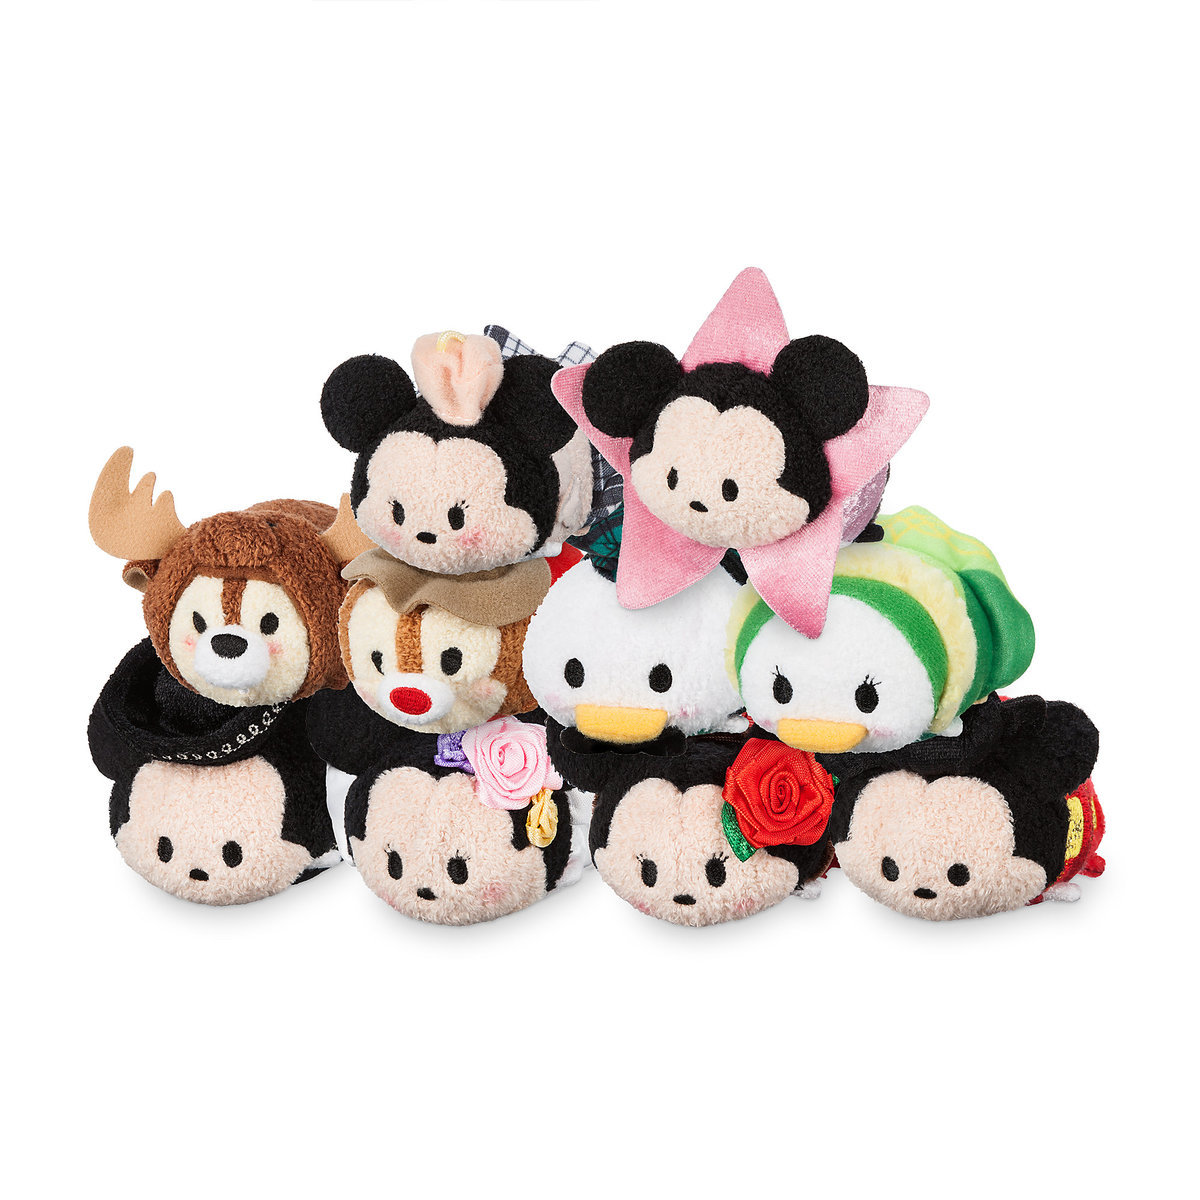 da632b62917 Mickey Mouse and Friends   Tsum Tsum   World Locations Collection ...